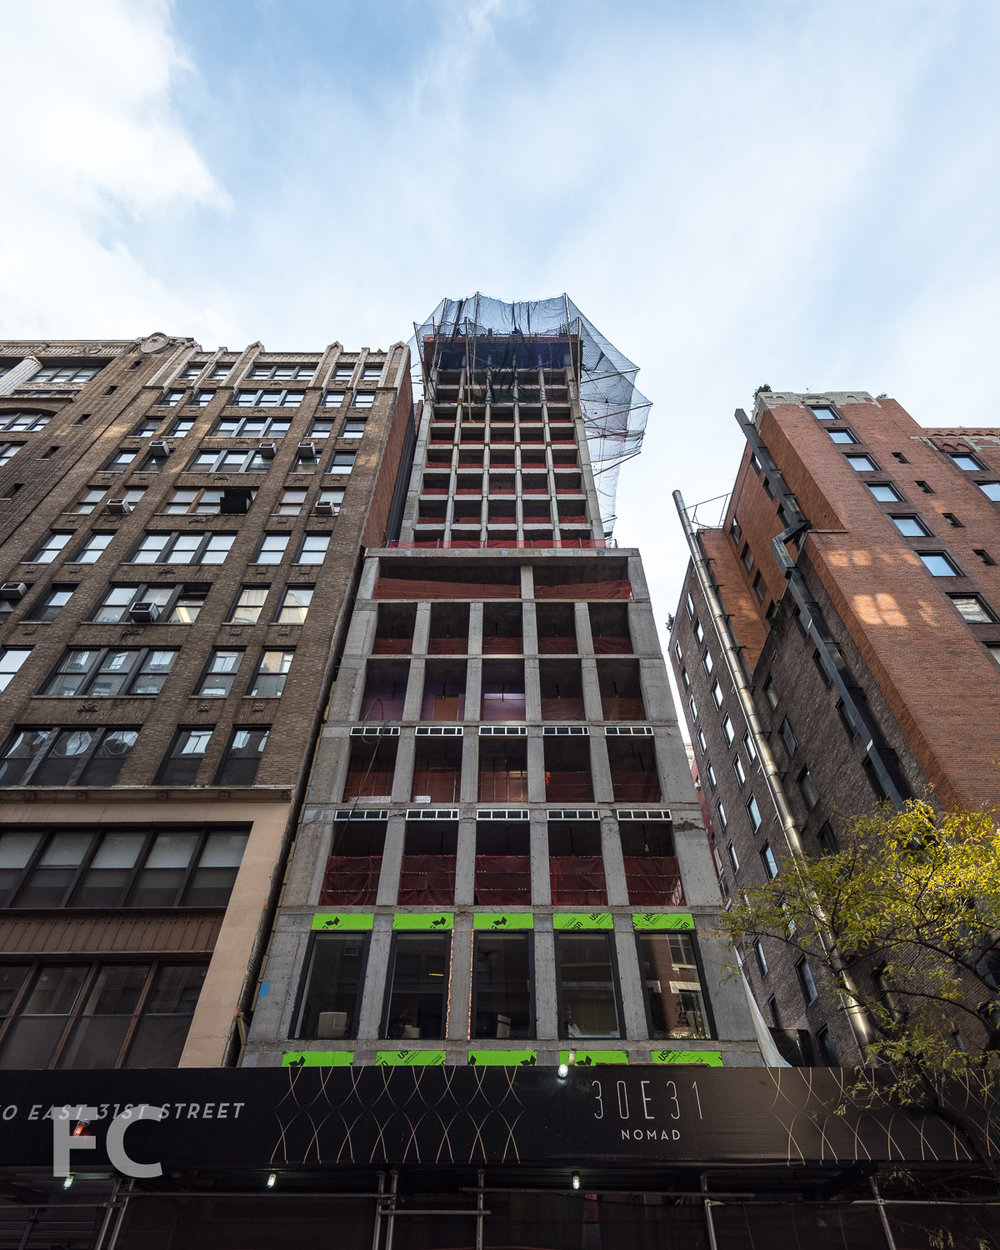 Looking up at the north facade from East 31st Street.